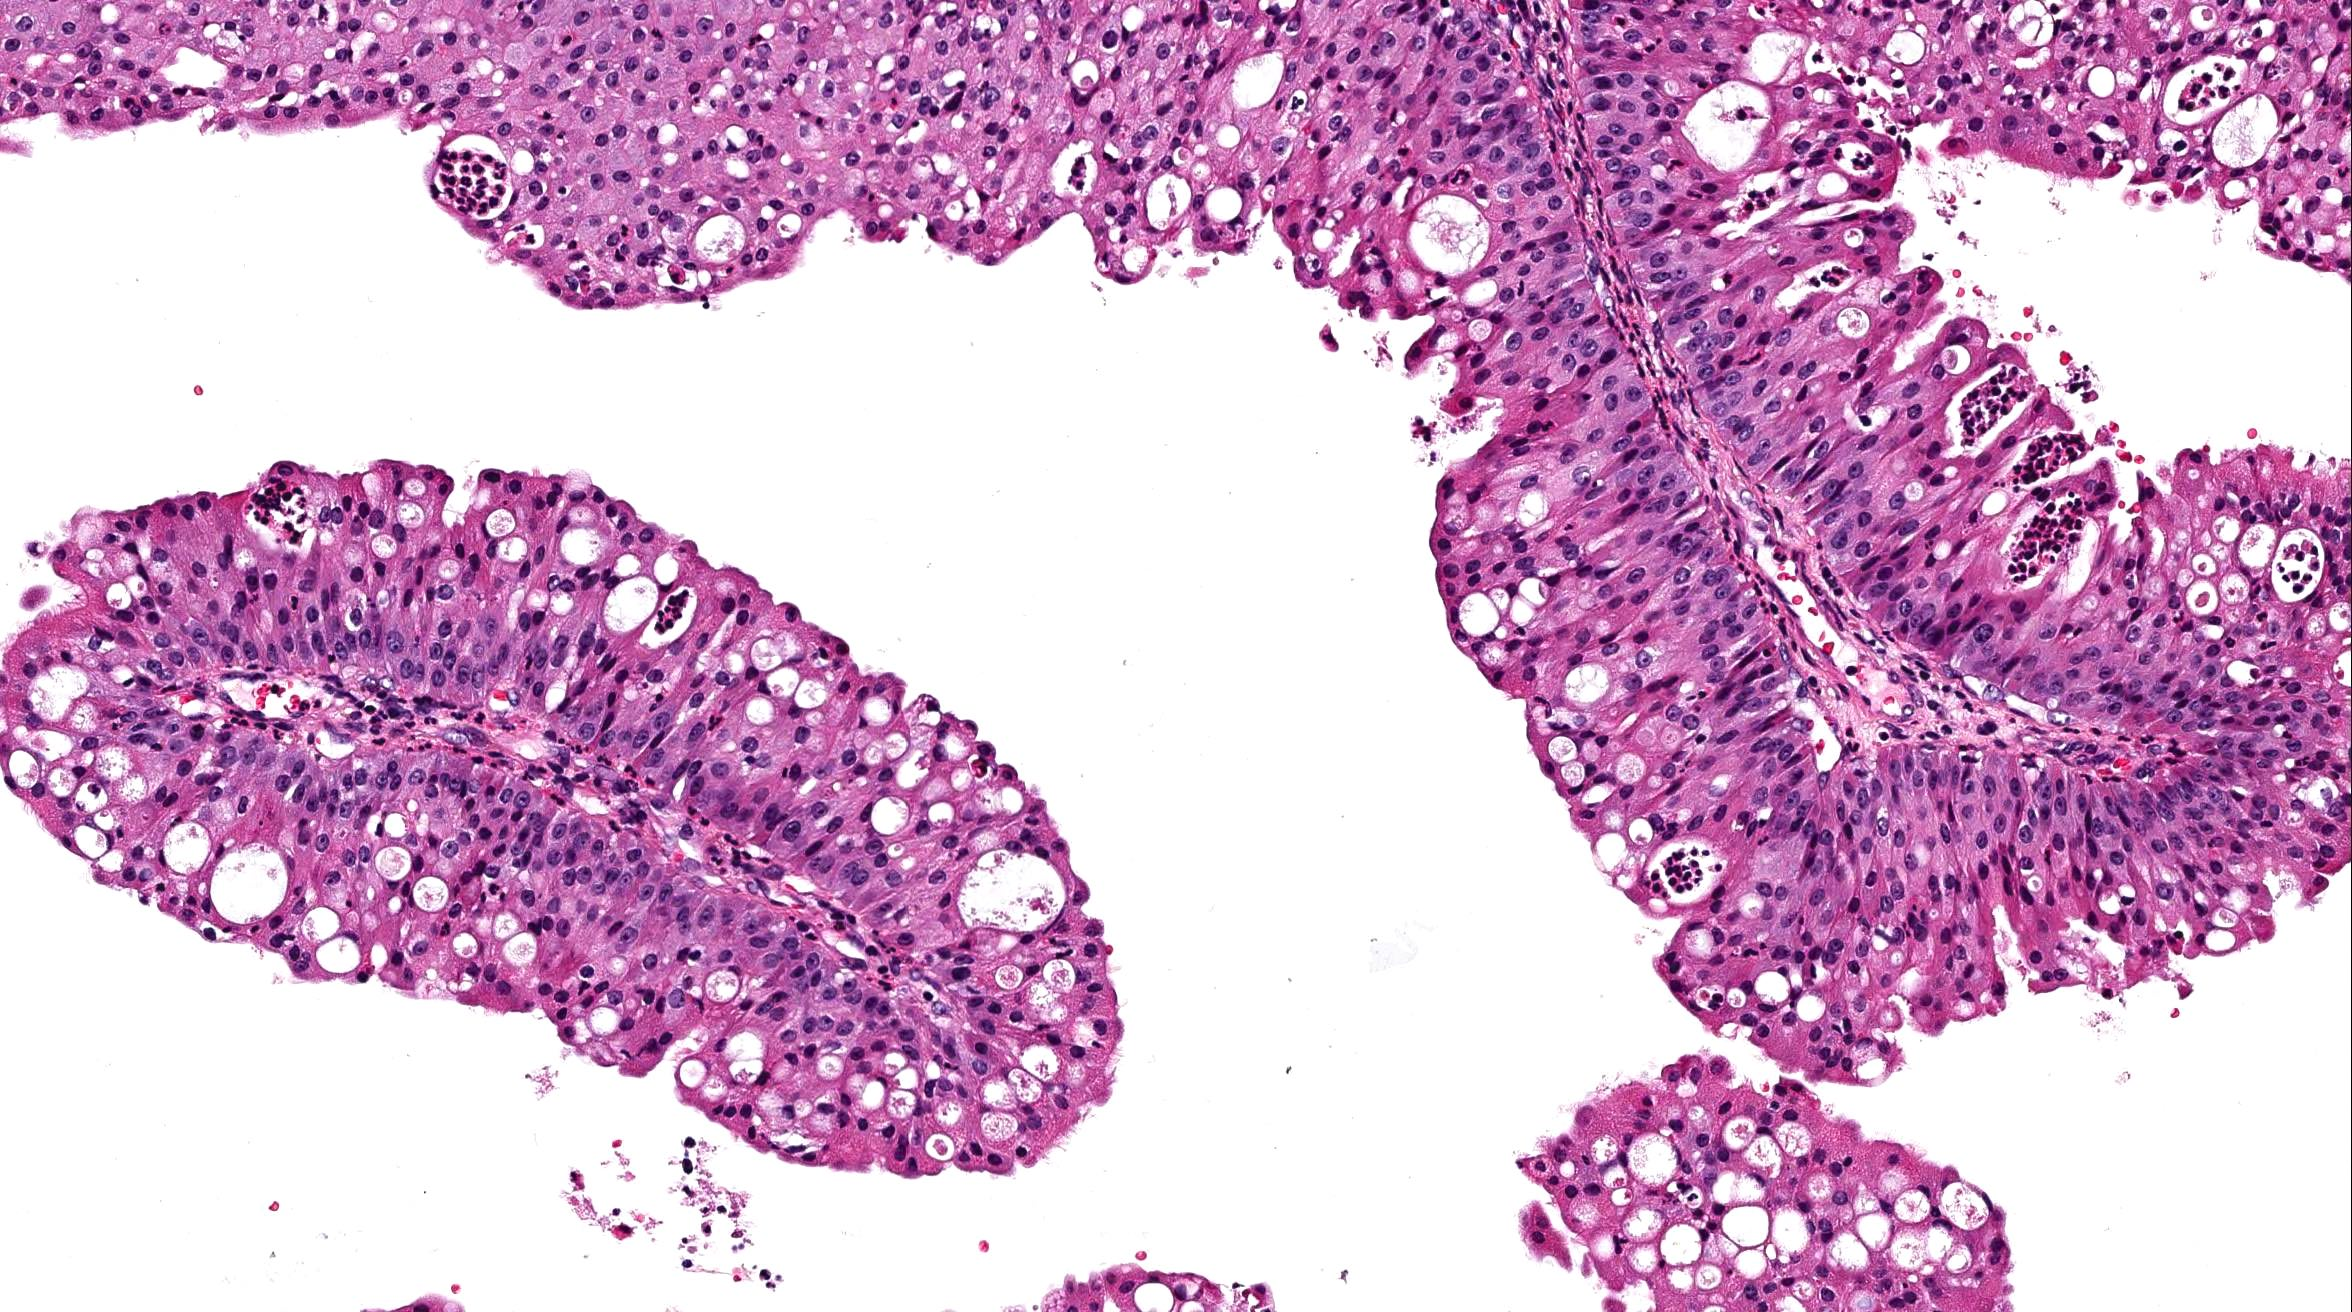 symptoms papillomavirus infection intraductal papilloma ductal carcinoma in situ